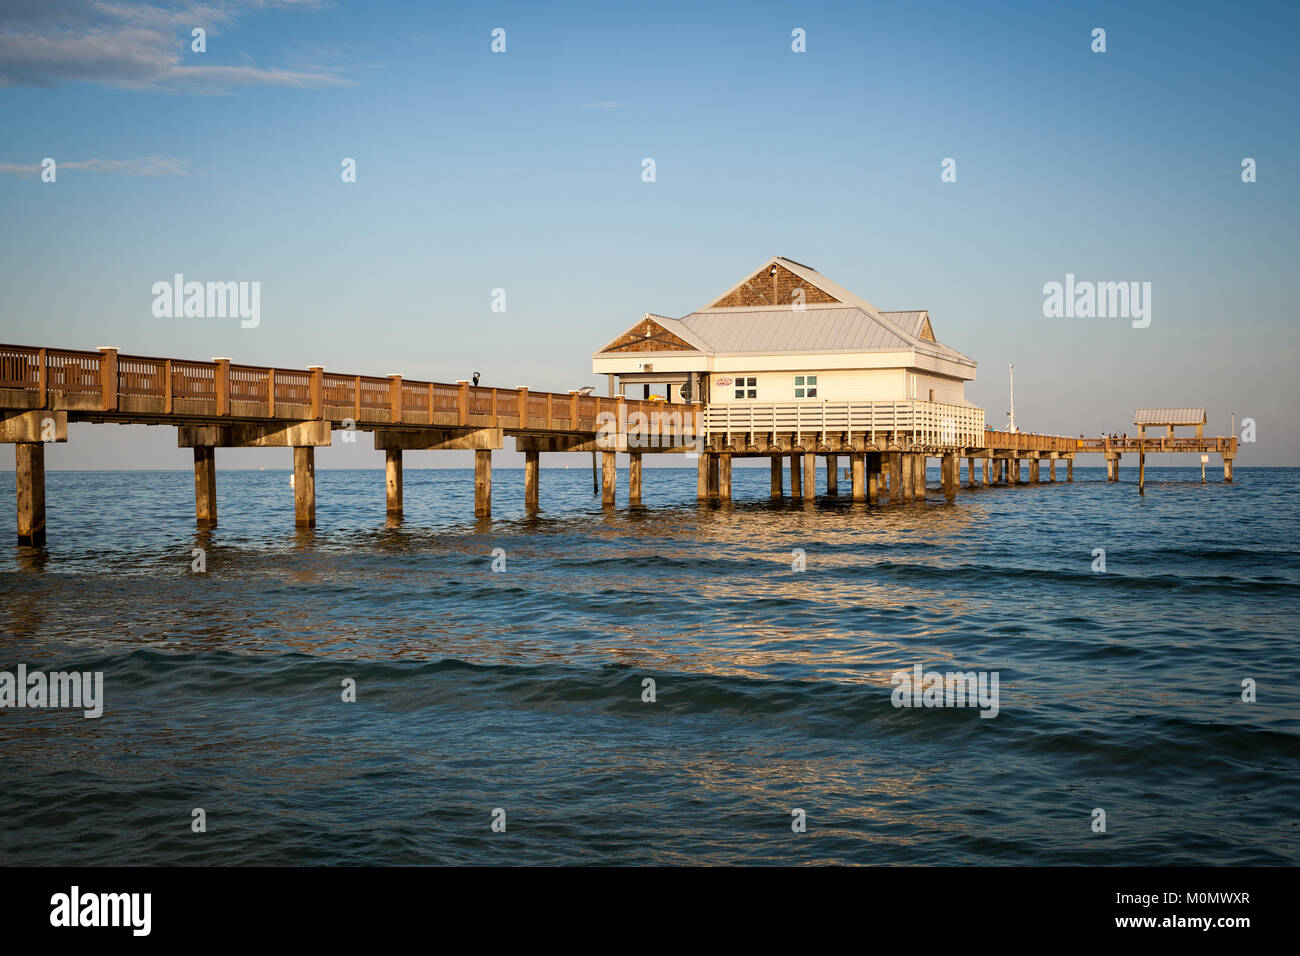 Fishing pier structure stock photos fishing pier for Clearwater fishing pier